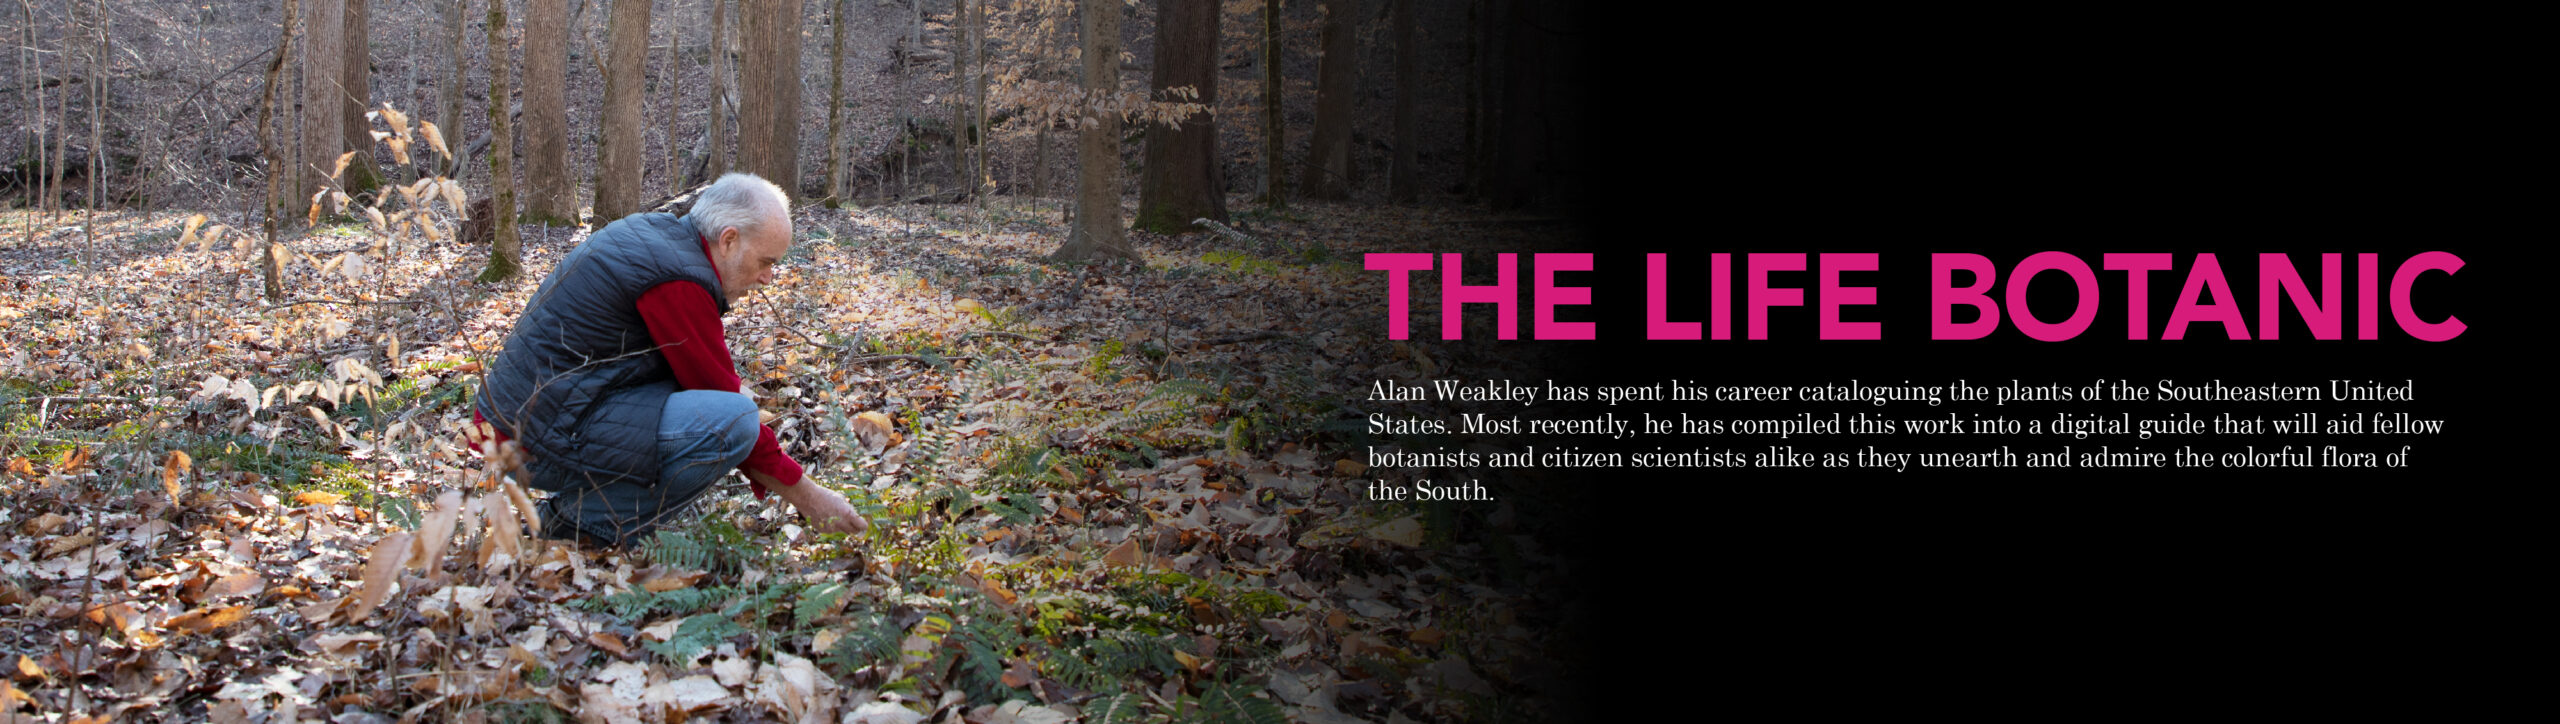 "Main feature banner for the story ""A Life Botanic"" with an image of Alan Weakley crouched down in a forest, looking at plants. The description for this story reads: ""Alan Weakley has spent his career cataloguing the plants of the Southeastern United States. Most recently, he has compiled this work into a digital guide that will aid fellow botanists and citizen scientists alike as they unearth and admire the colorful flora of the South."" Click here to read this story."